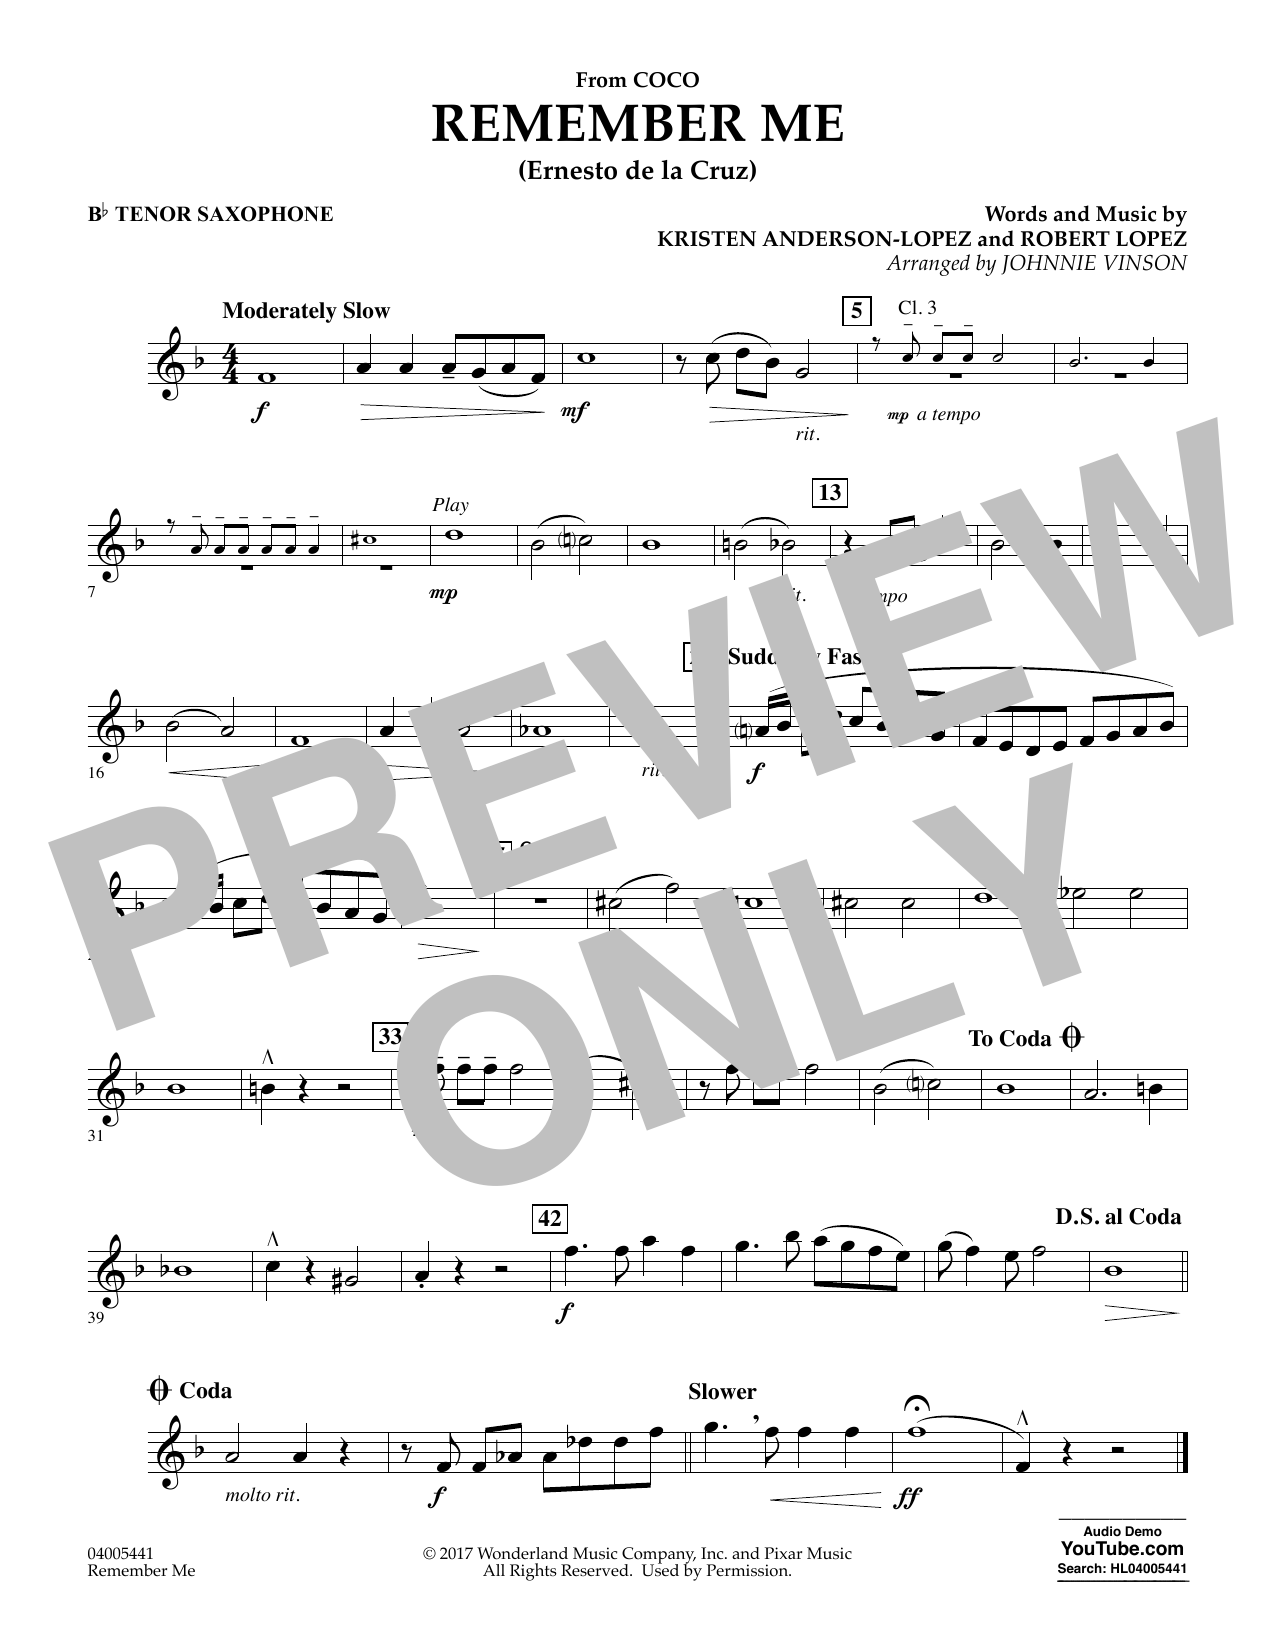 Kristen Anderson-Lopez & Robert Lopez Remember Me (from Coco) (arr. Johnnie Vinson) - Bb Tenor Saxophone sheet music notes and chords. Download Printable PDF.